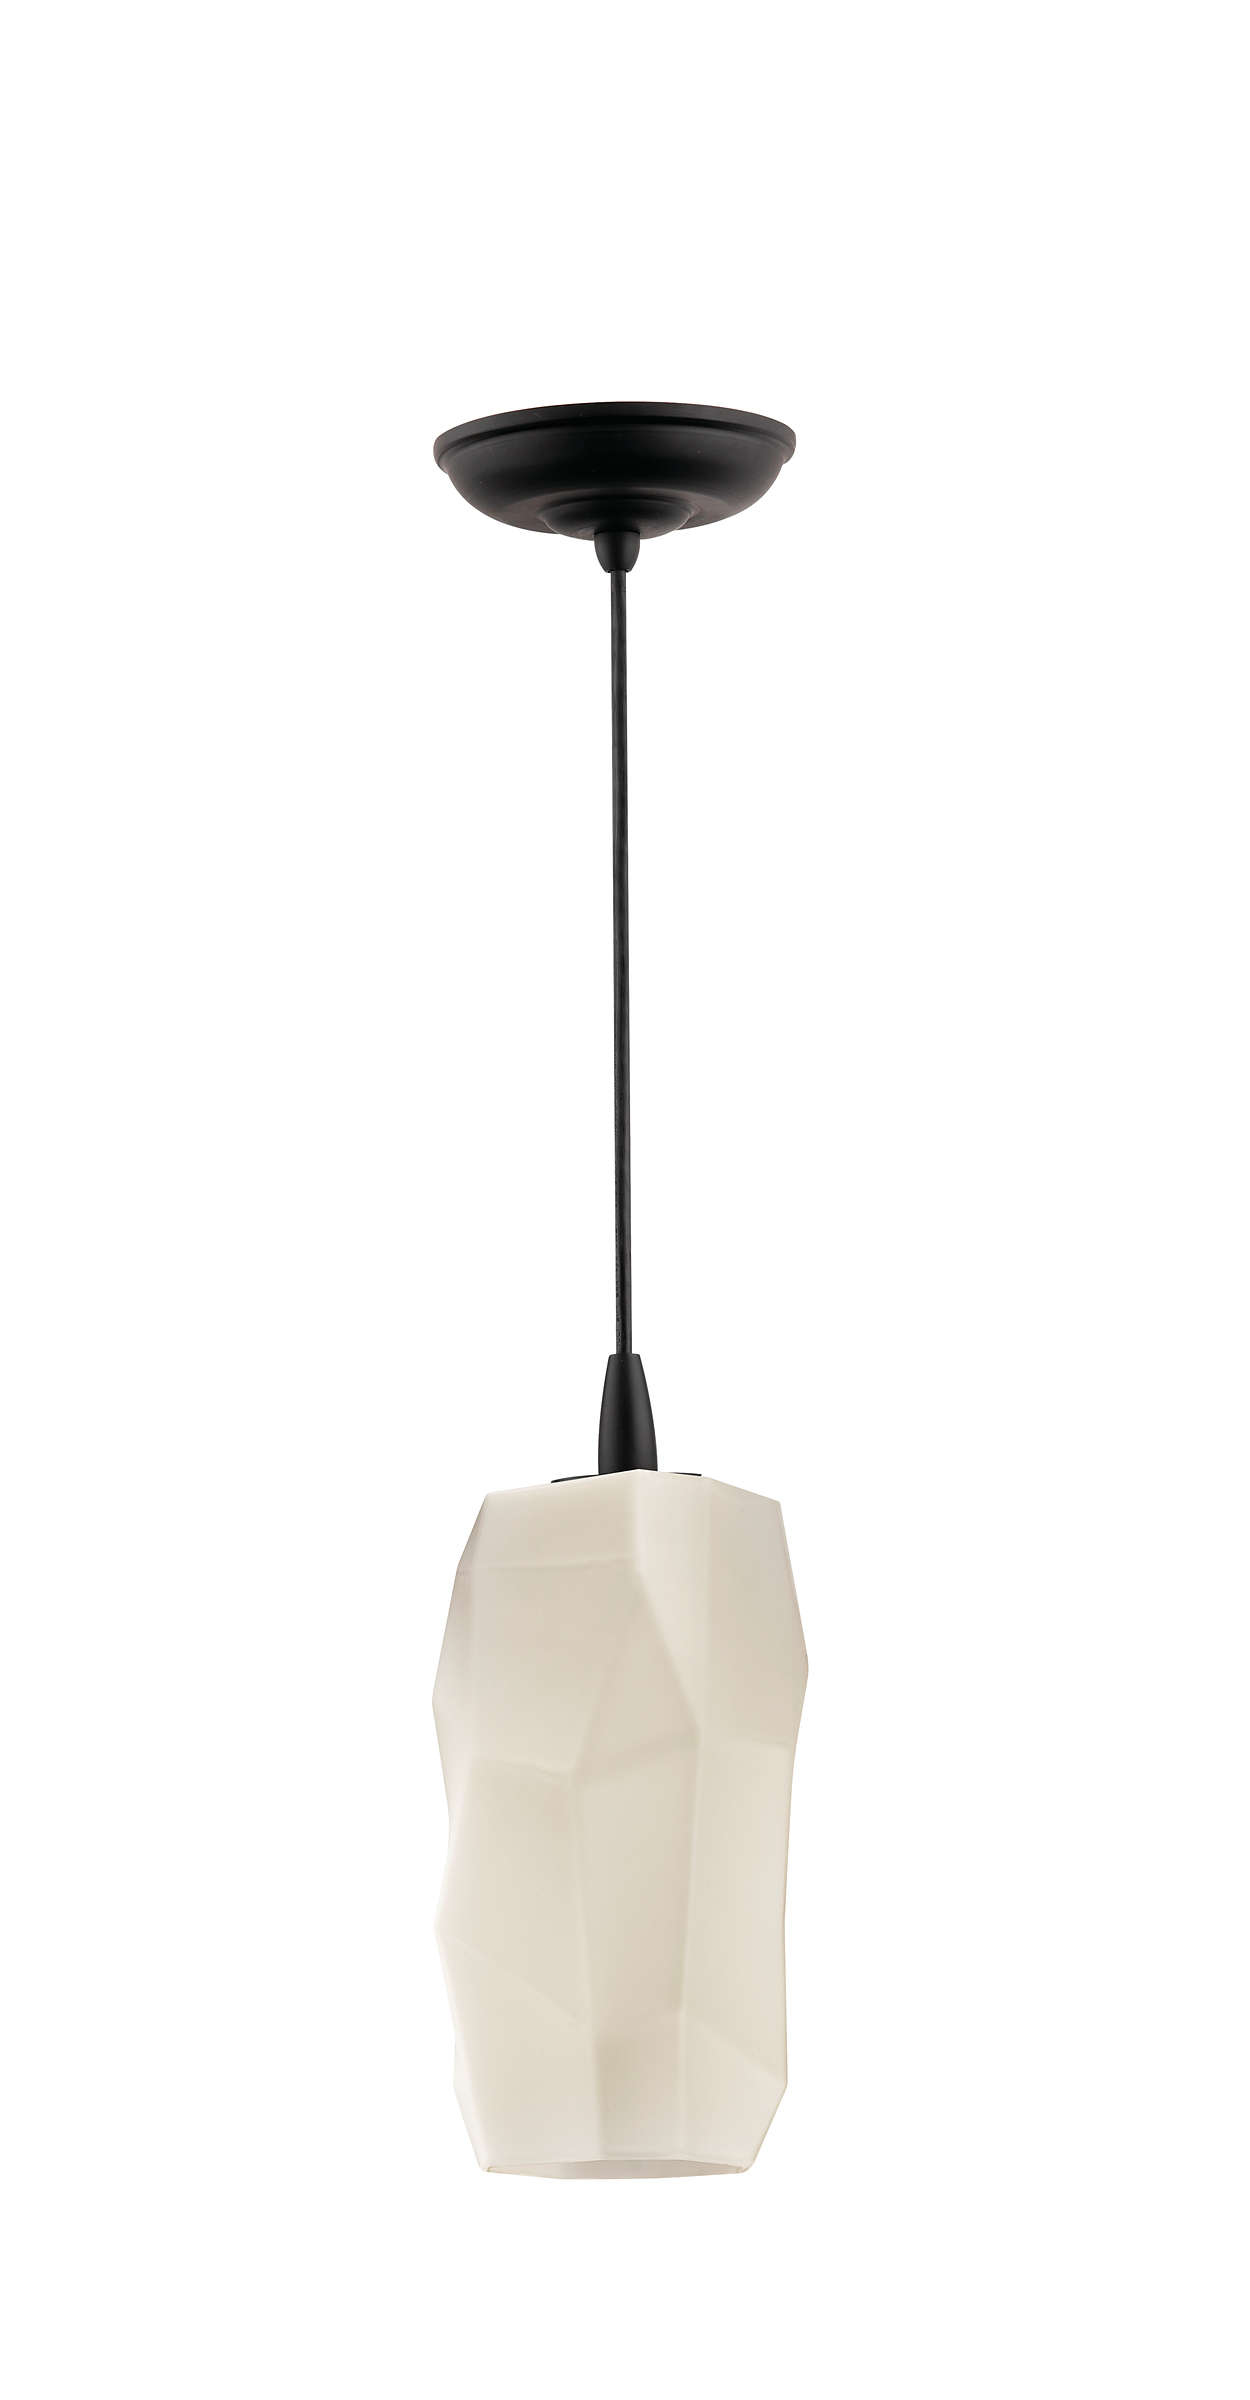 Facet 1-light pendant in Black finish